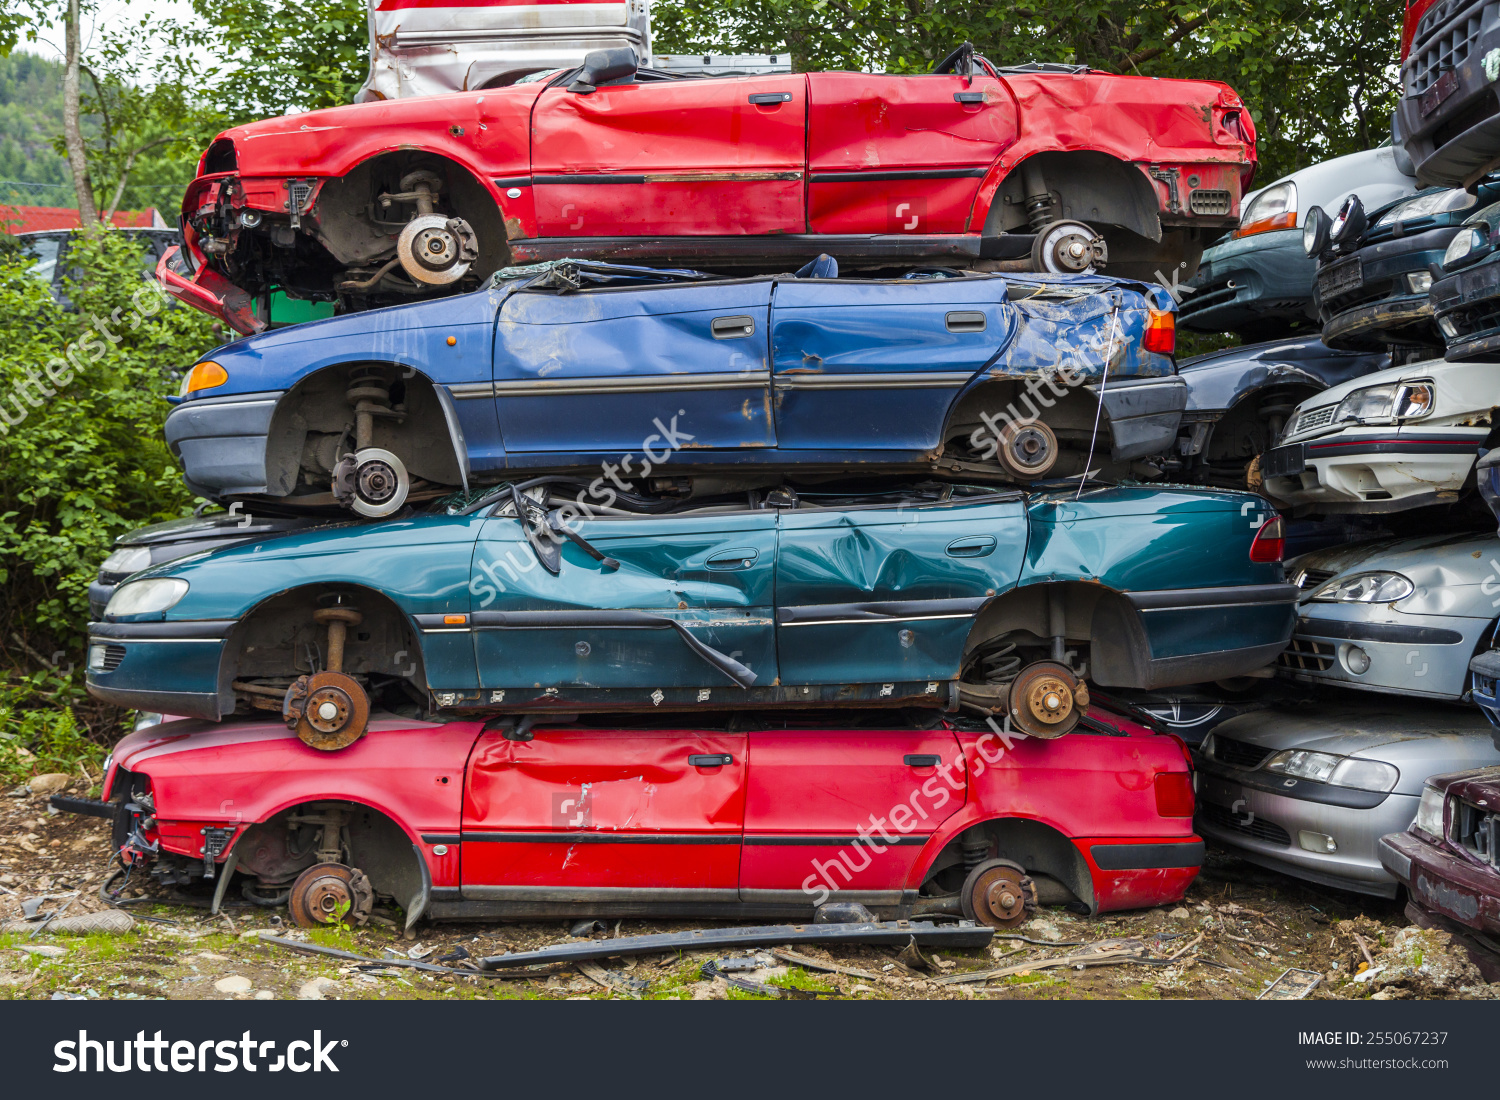 Dump Broken Crashed Cars Cemetery Cars Stock Photo 255067237.